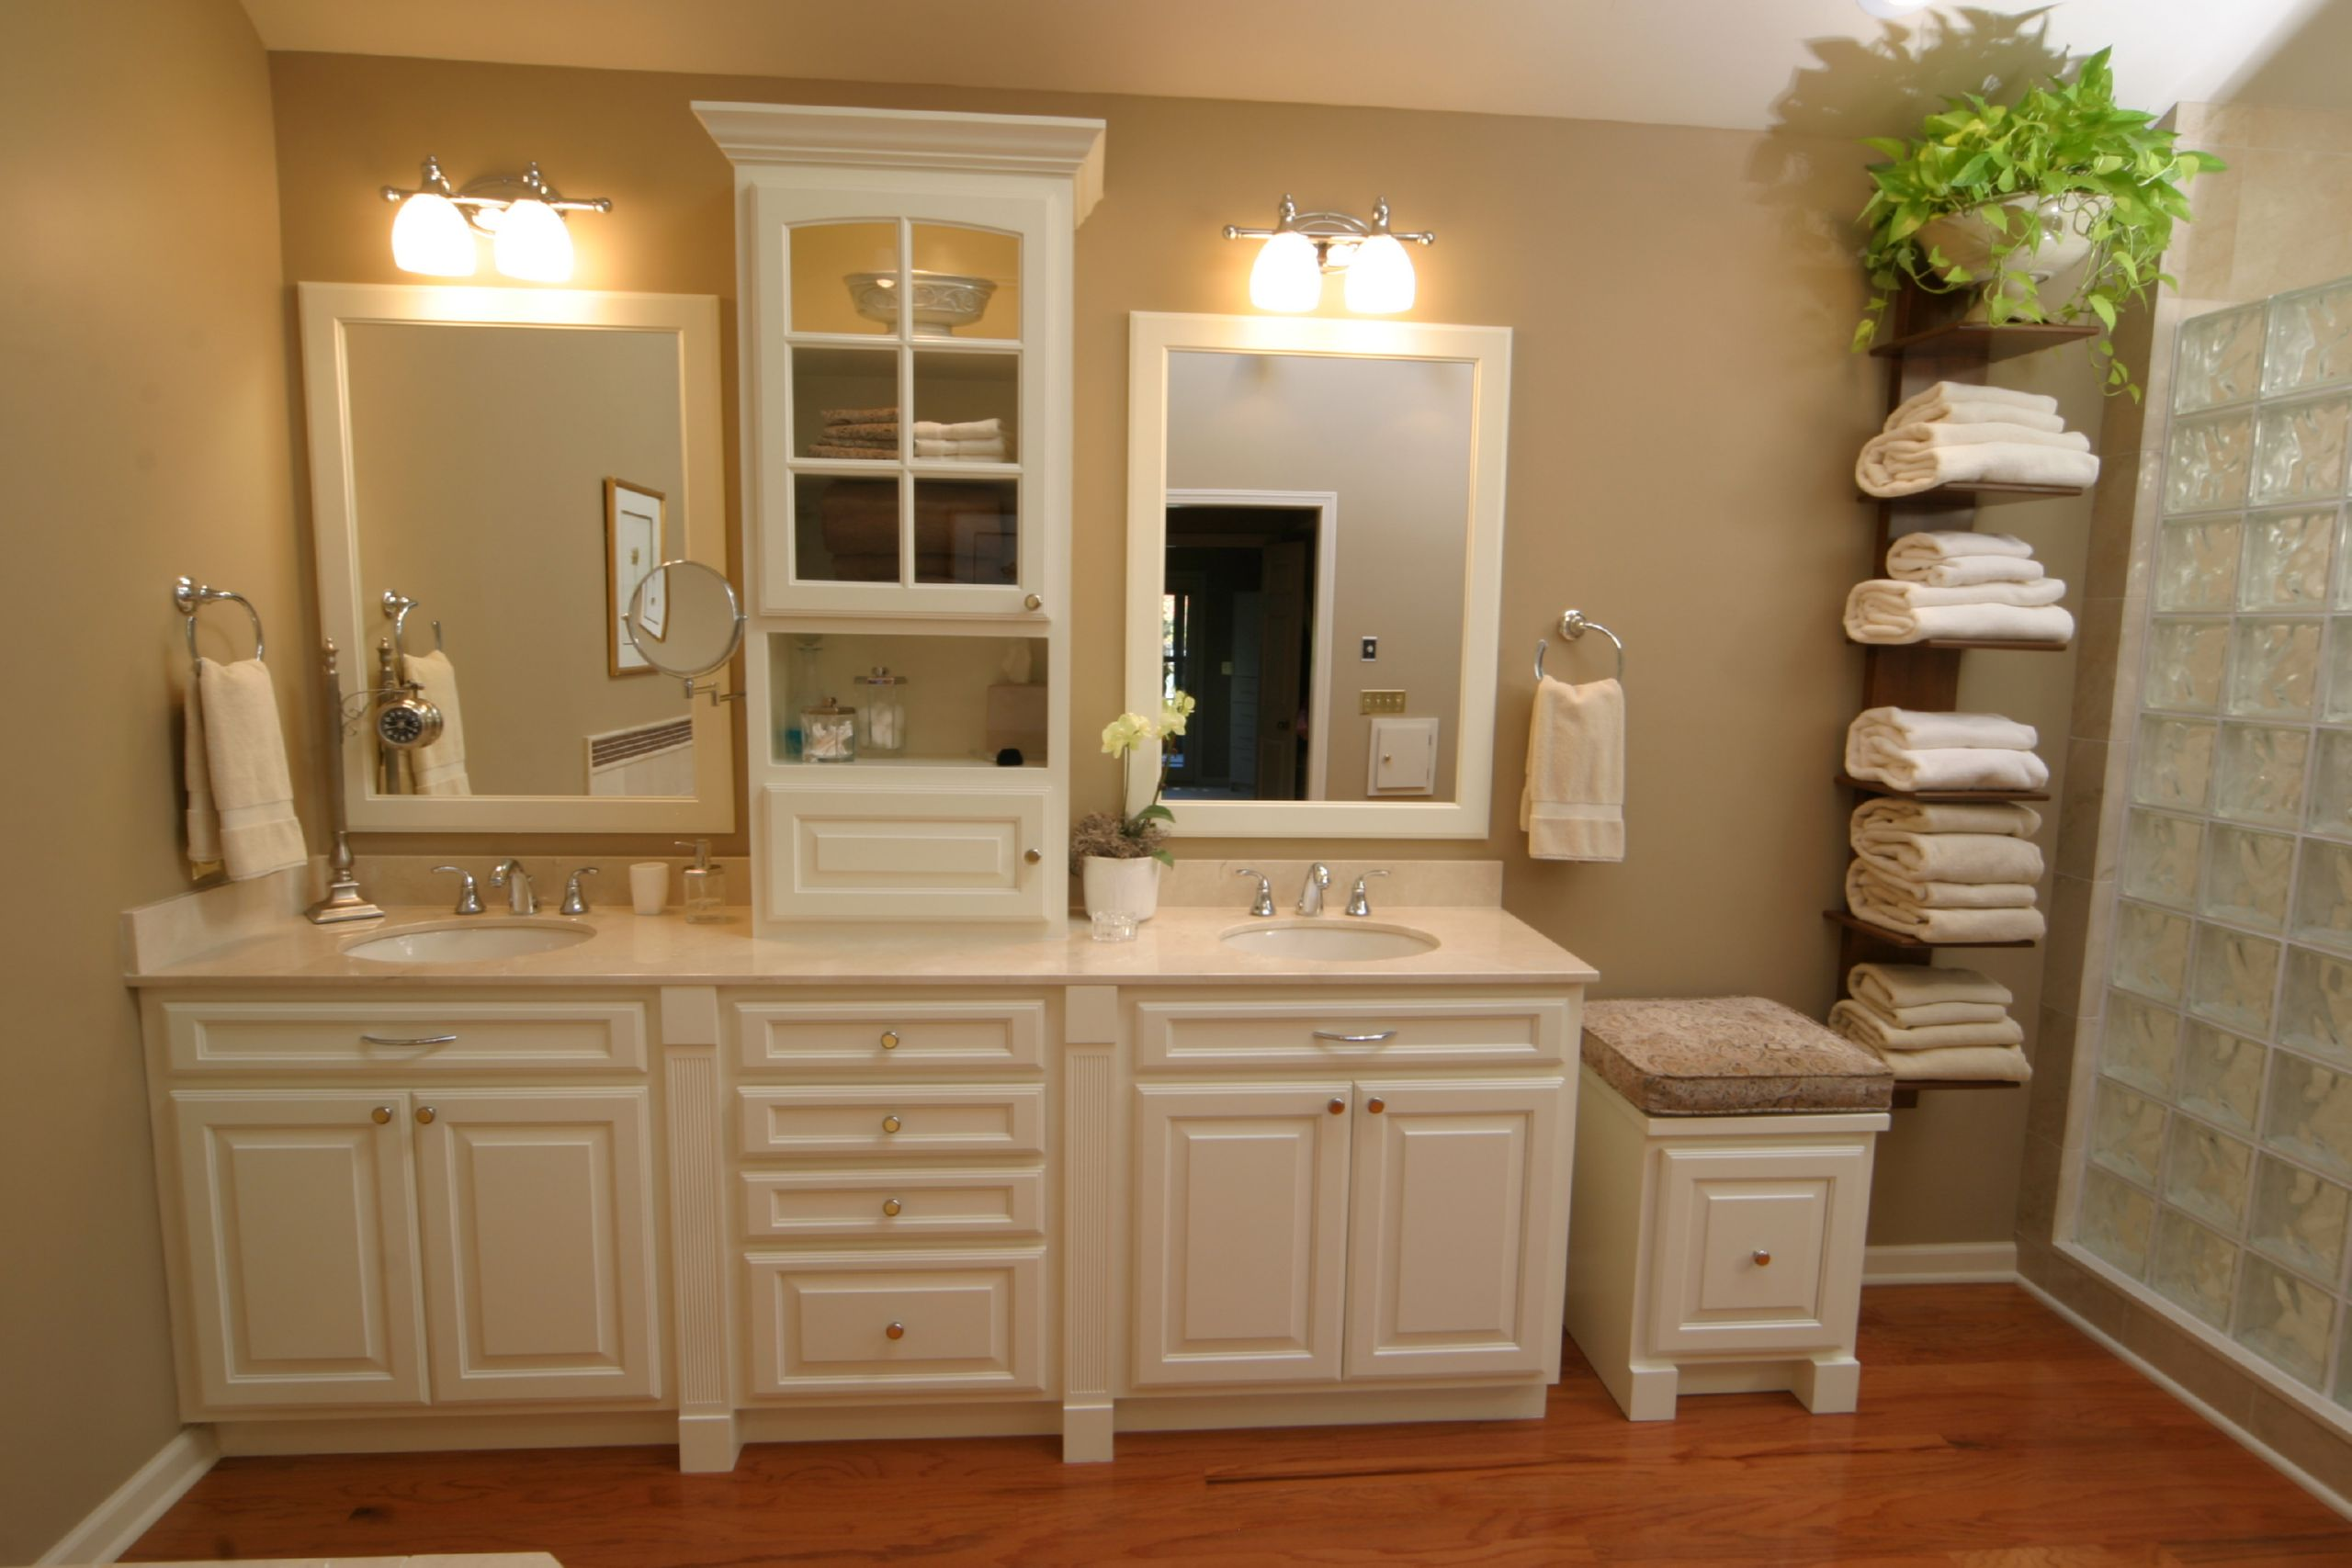 Bathroom remodeling tips njw construction for Kitchen bathroom remodel